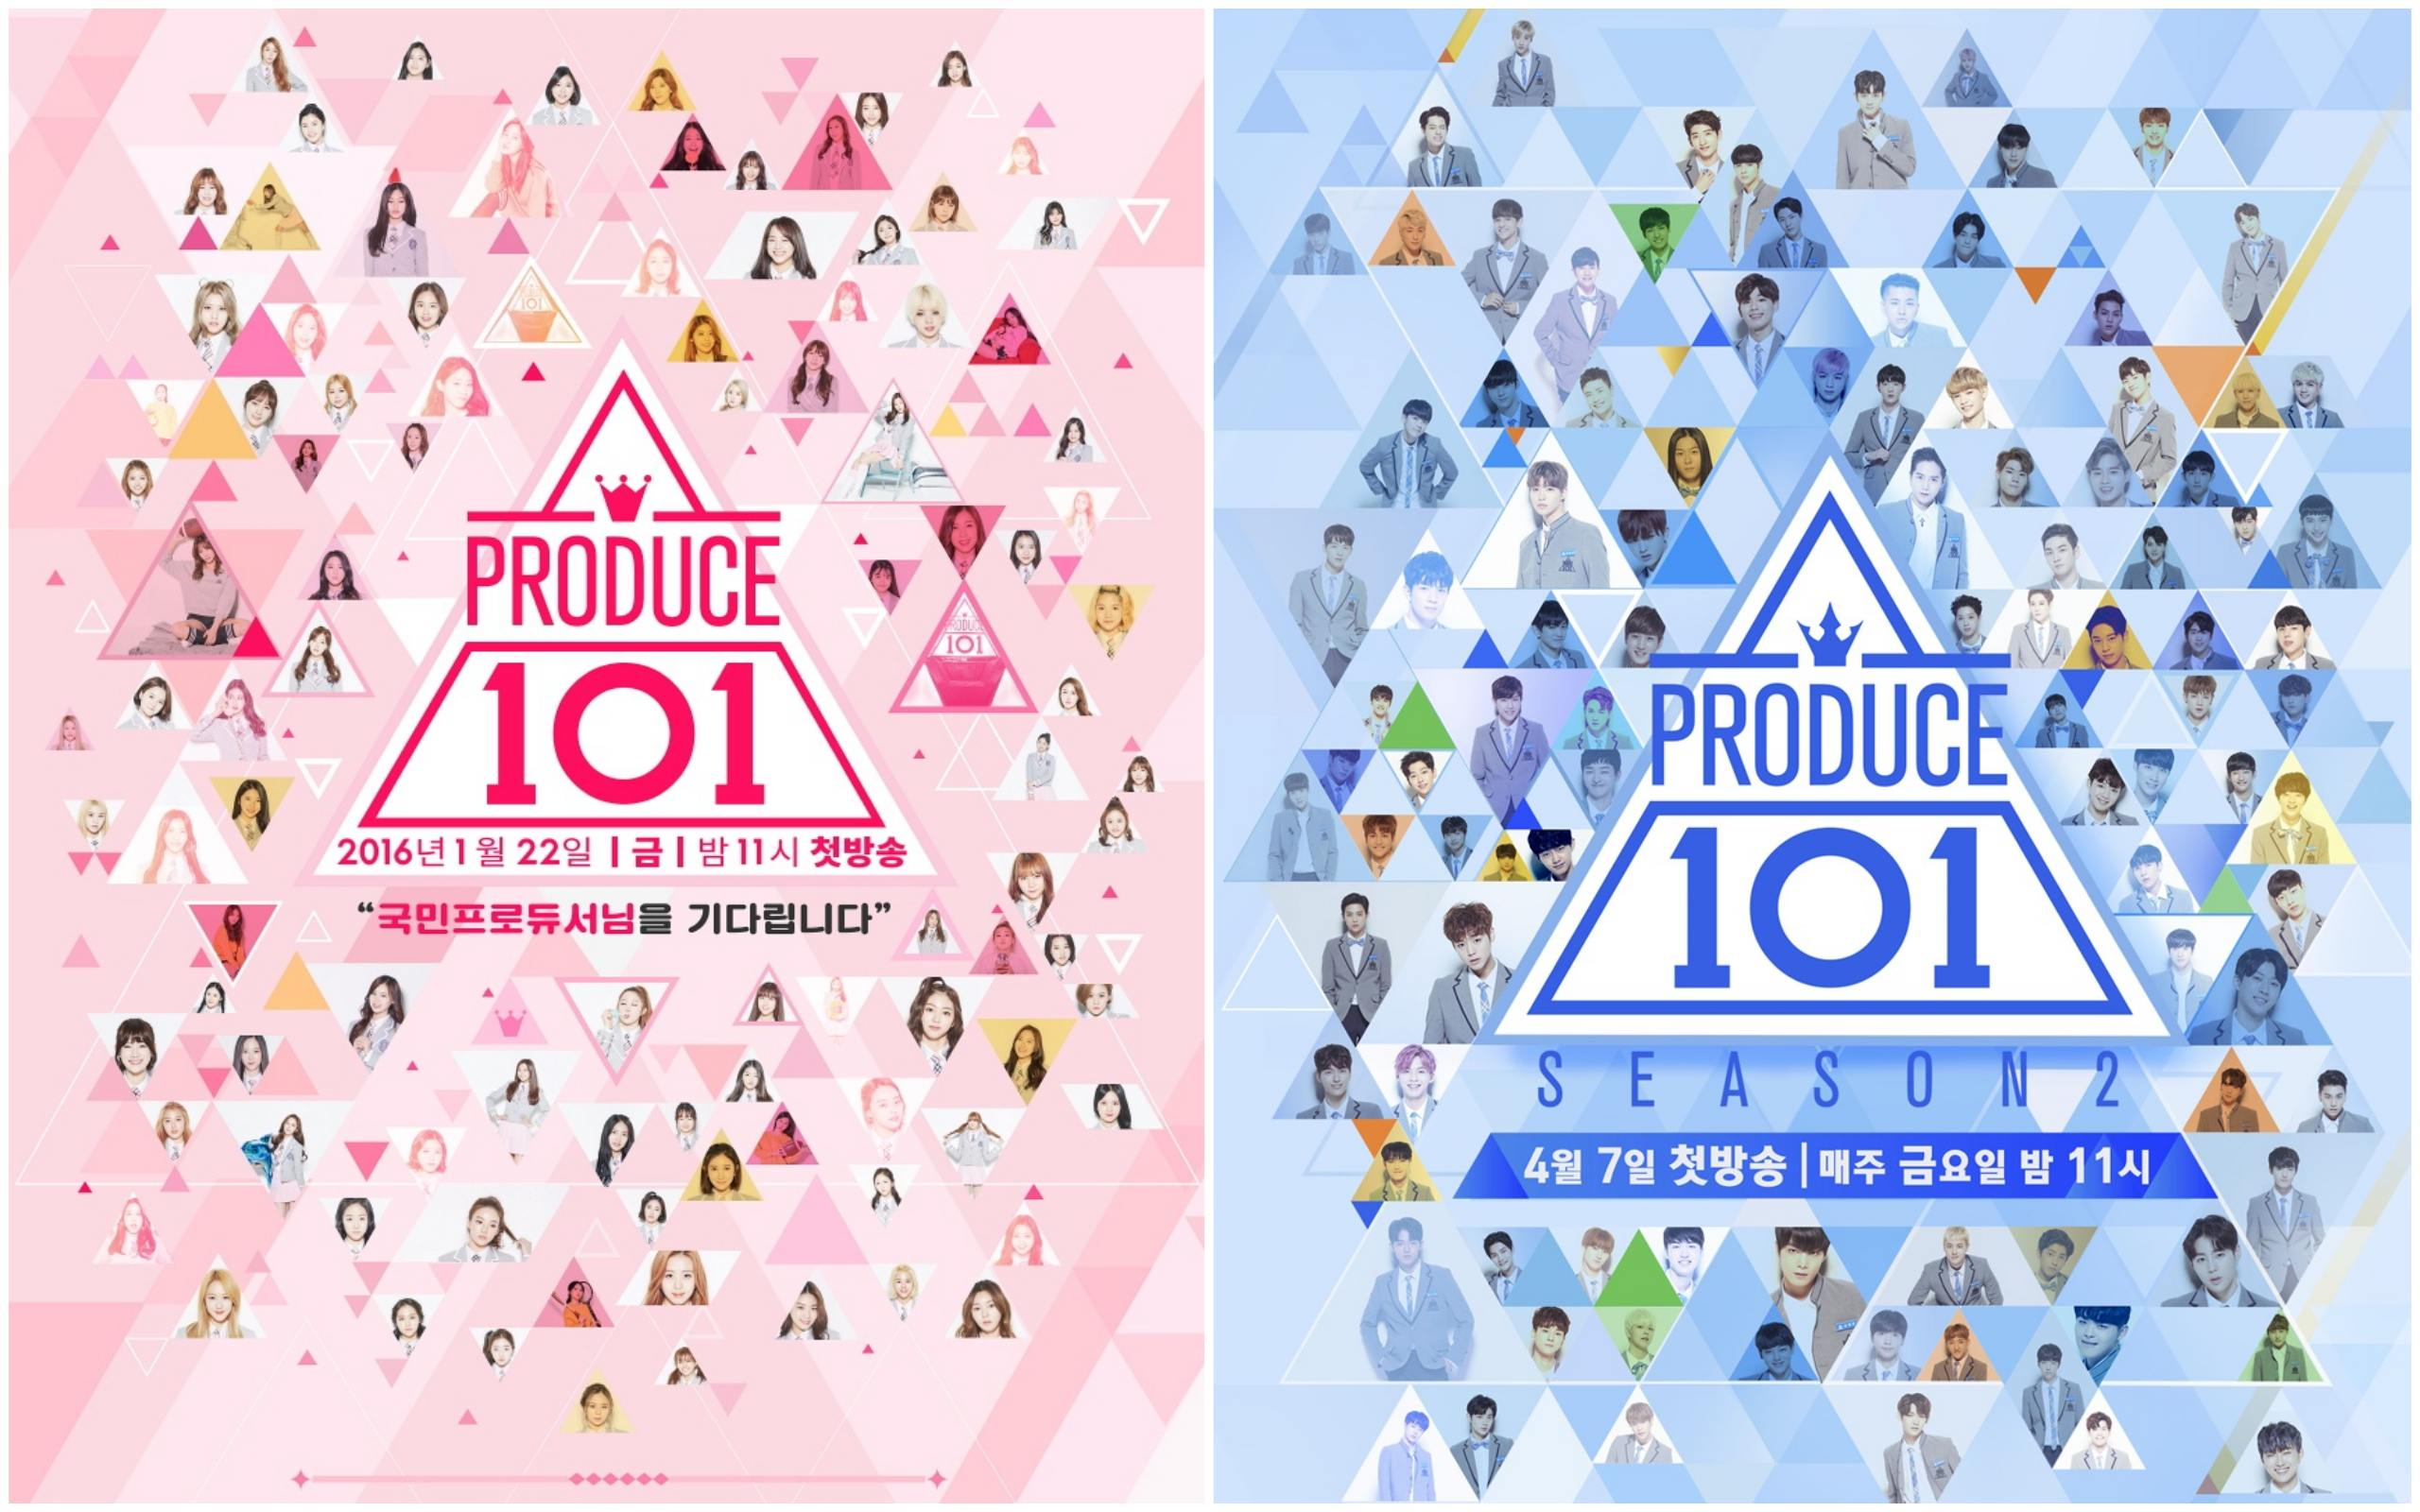 I.O.I Members and Their Produce 101 Season 2 Counterparts